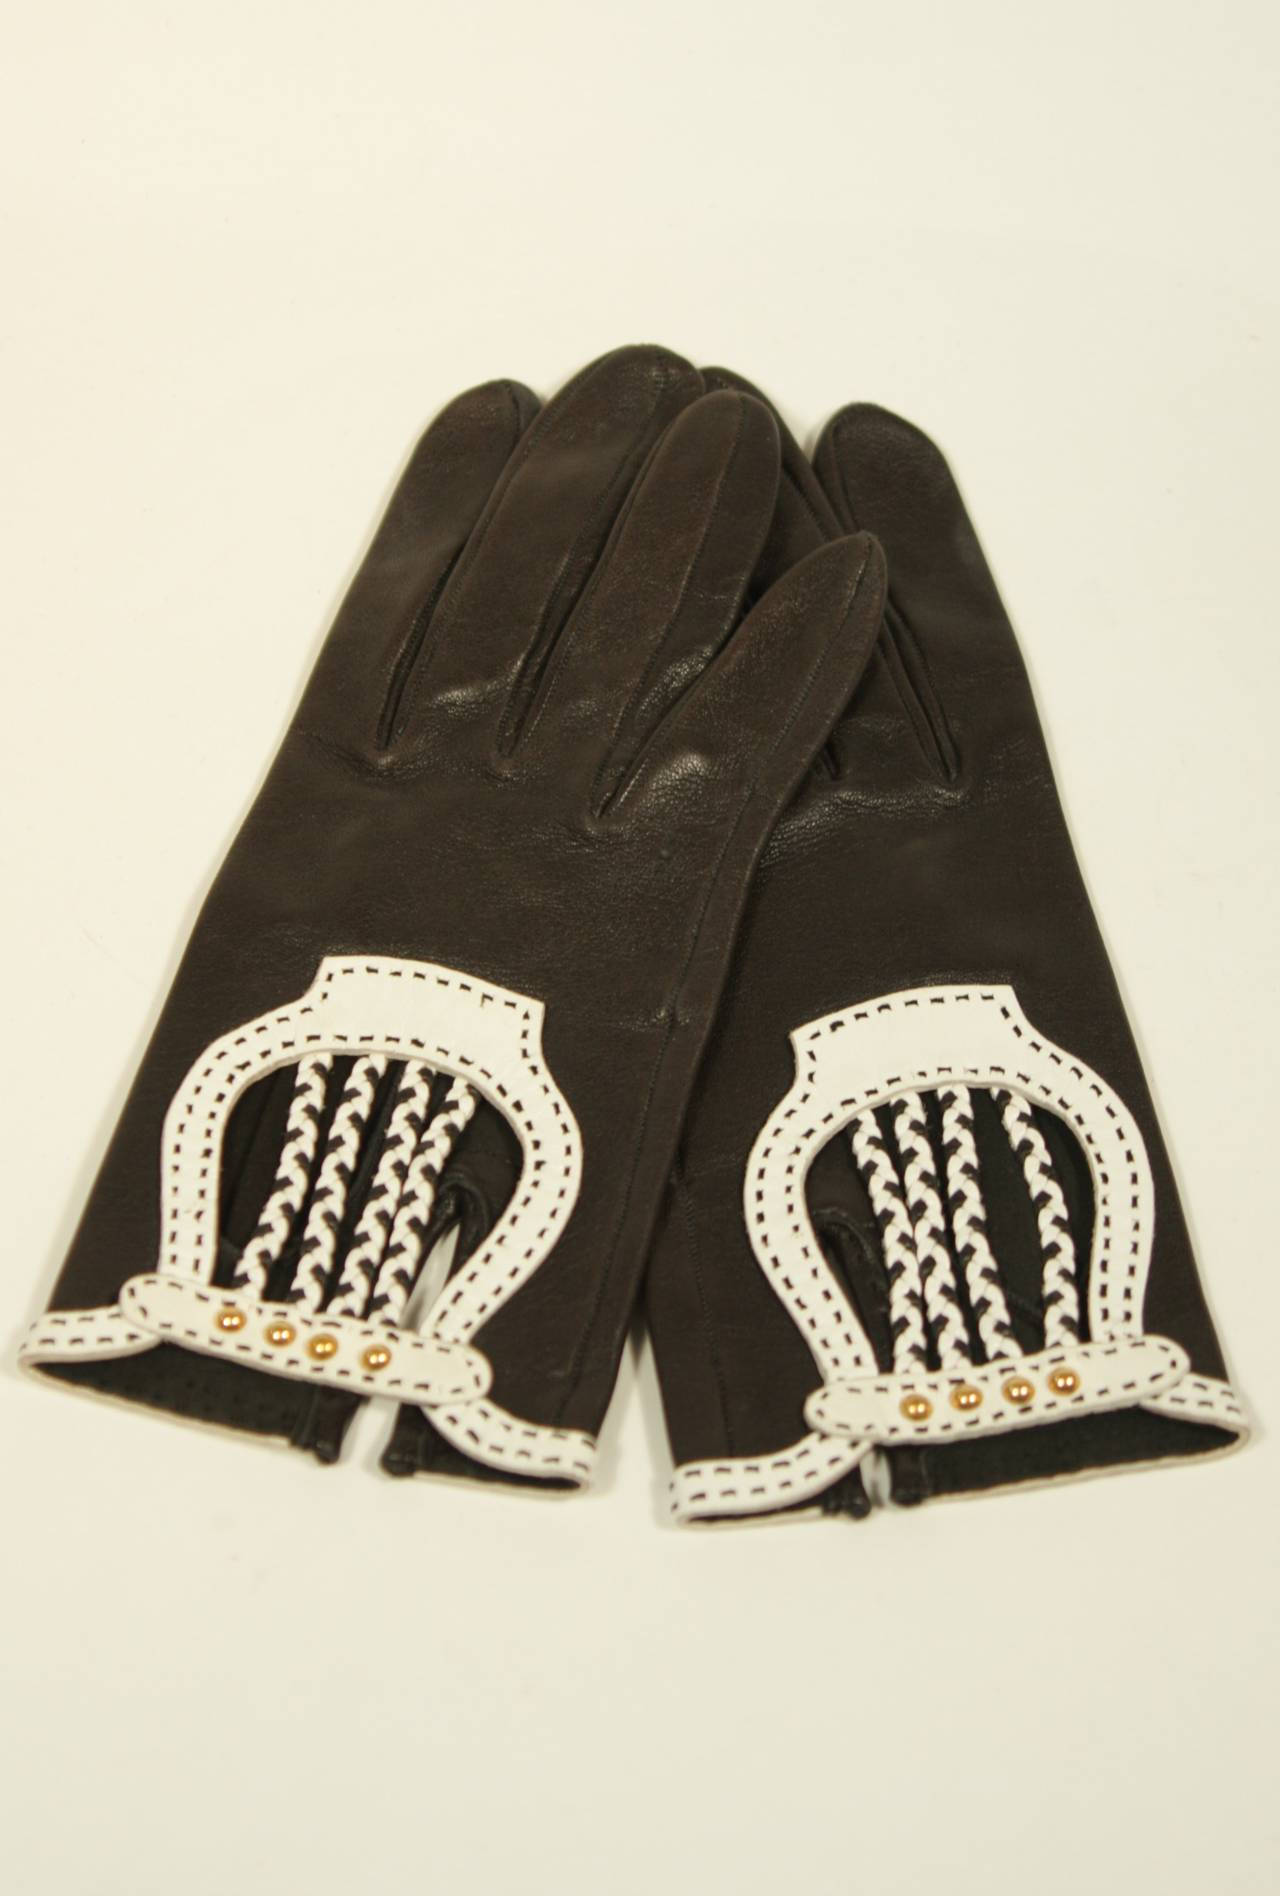 Hermes Black Leather Gloves with White Accents and Braiding Size 6.5 In Excellent Condition For Sale In Los Angeles, CA